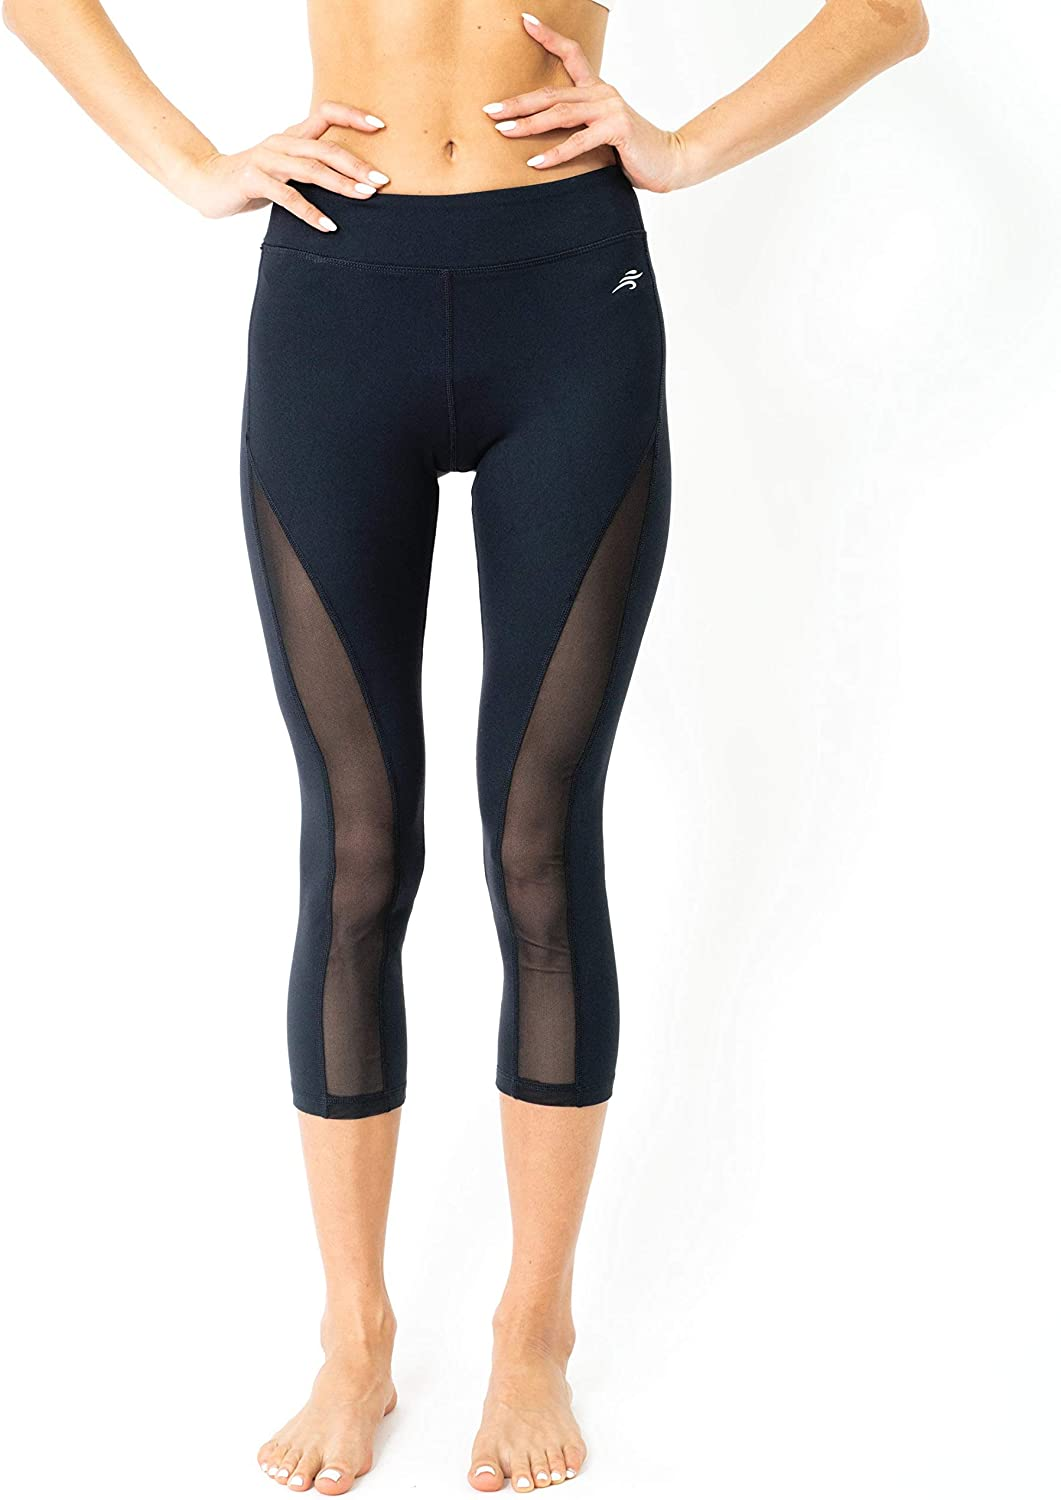 Leggings for Women - Capri Yoga Pants for Workout - High Waisted Mesh - Regular & Plus Size - by Savoy Active